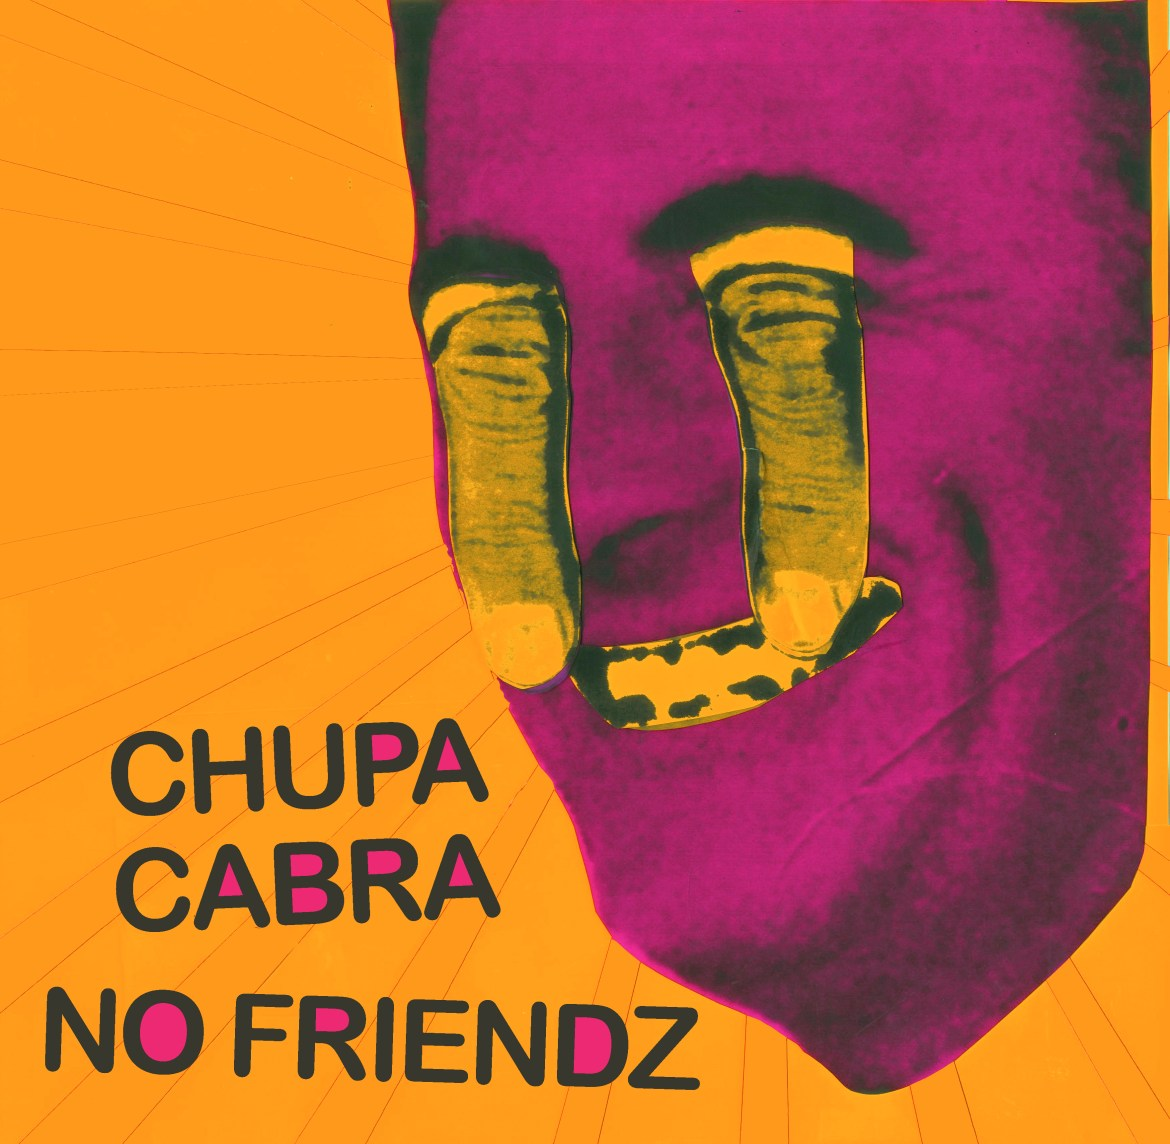 NEWS: Chupa Cabra and No Friendz announce split LP on Trashmouth Records